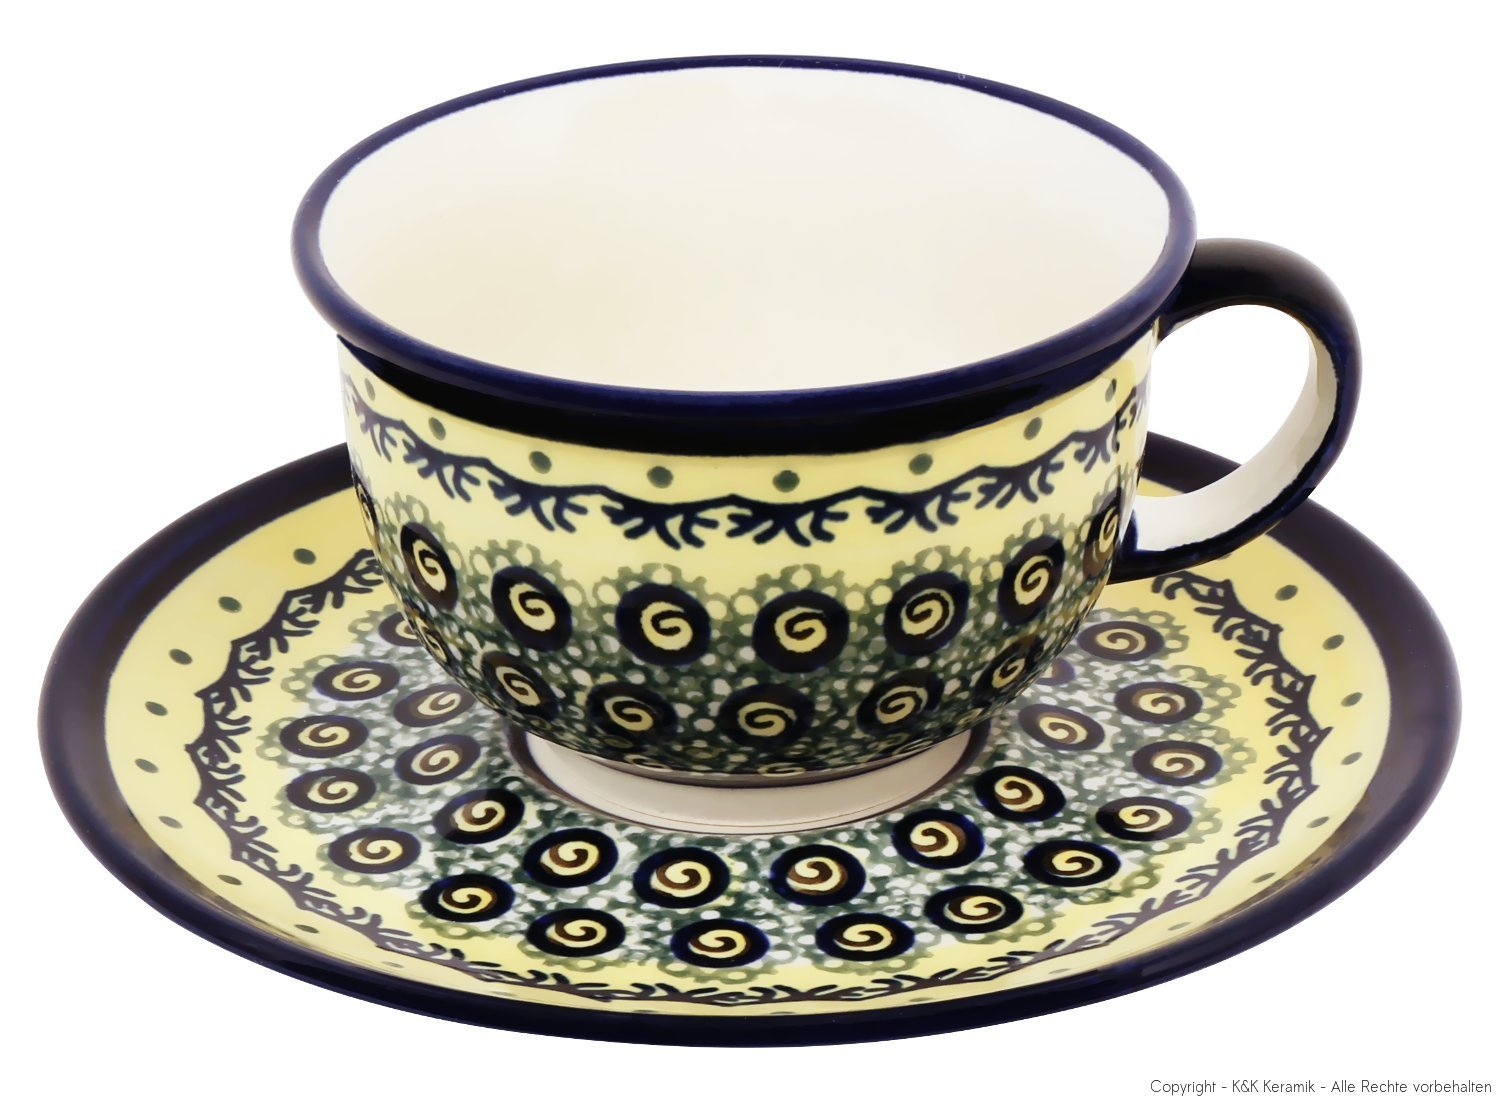 Bunzlauer Keramik Ceramic Cup and Saucer 0.2 litre Design DU1